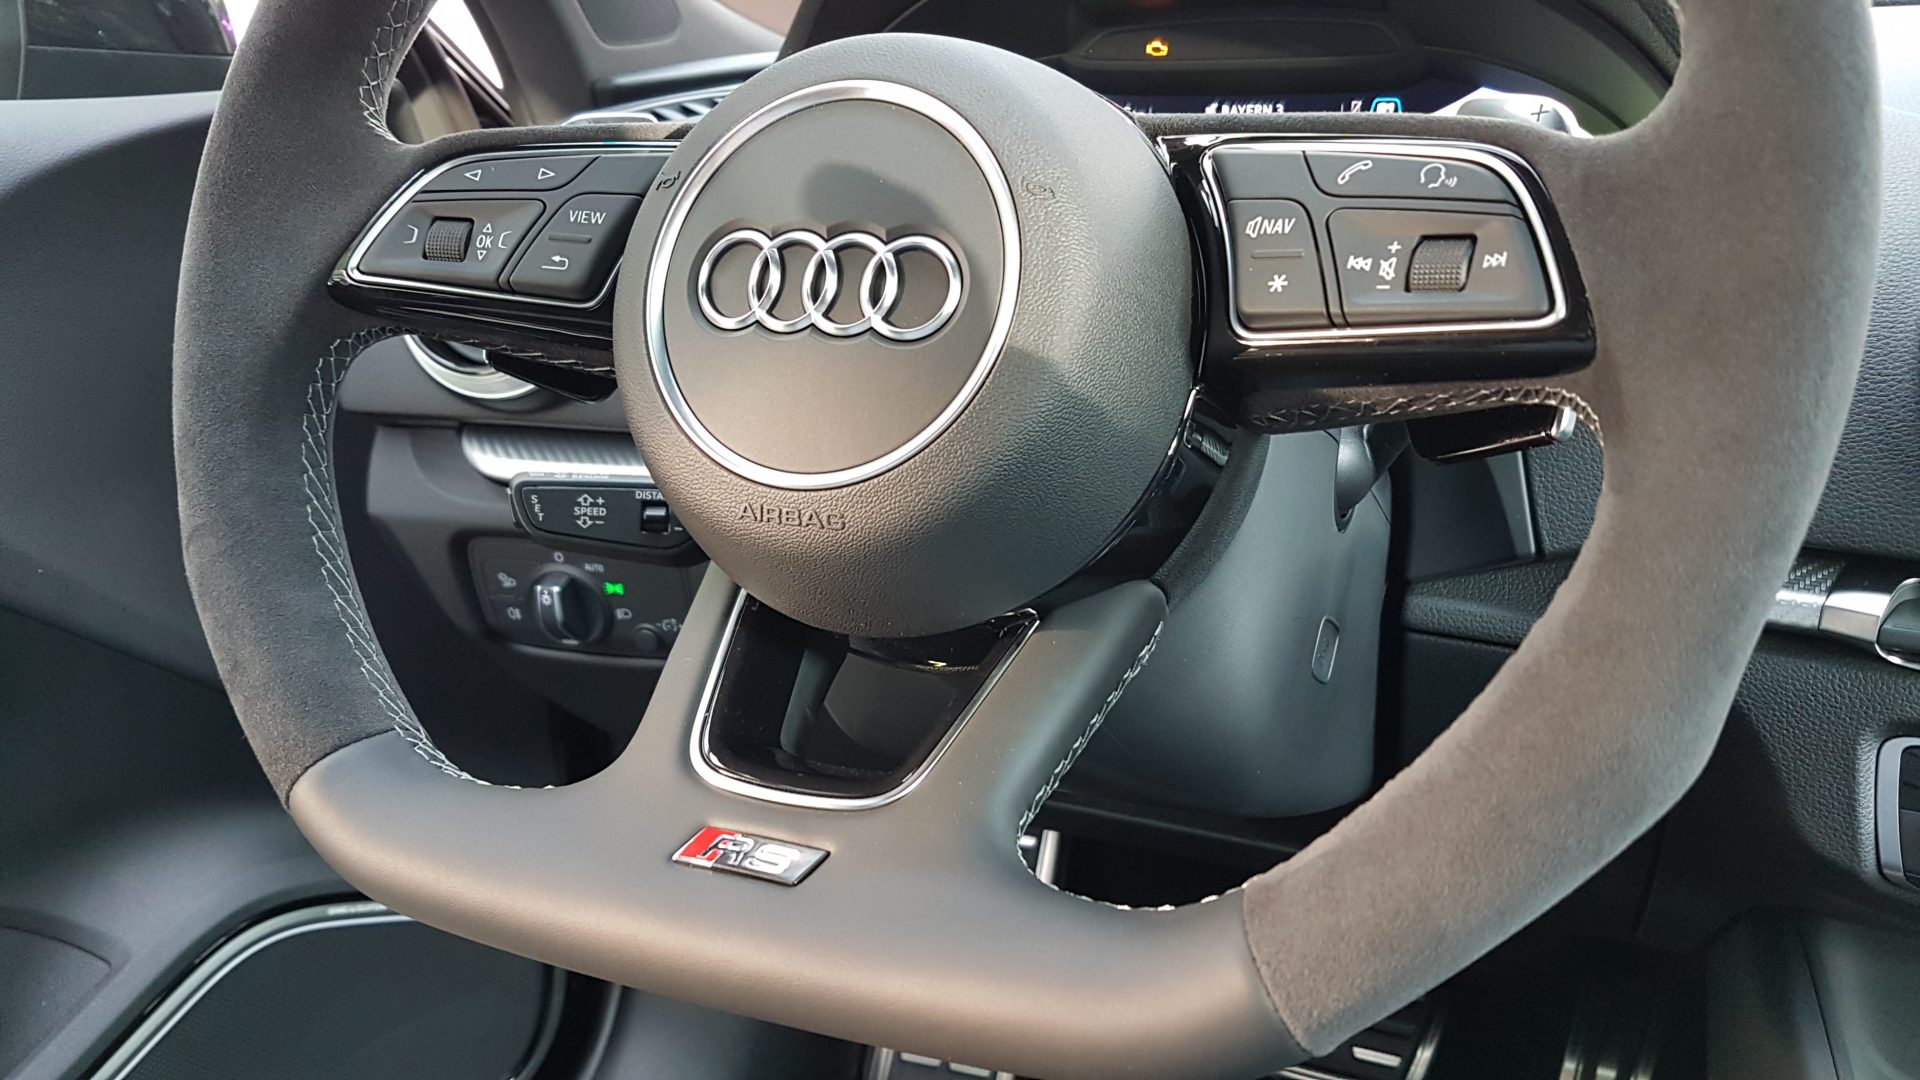 AIL Audi RS3 Sportback Matrix Panorama Virtual Cockpit 3